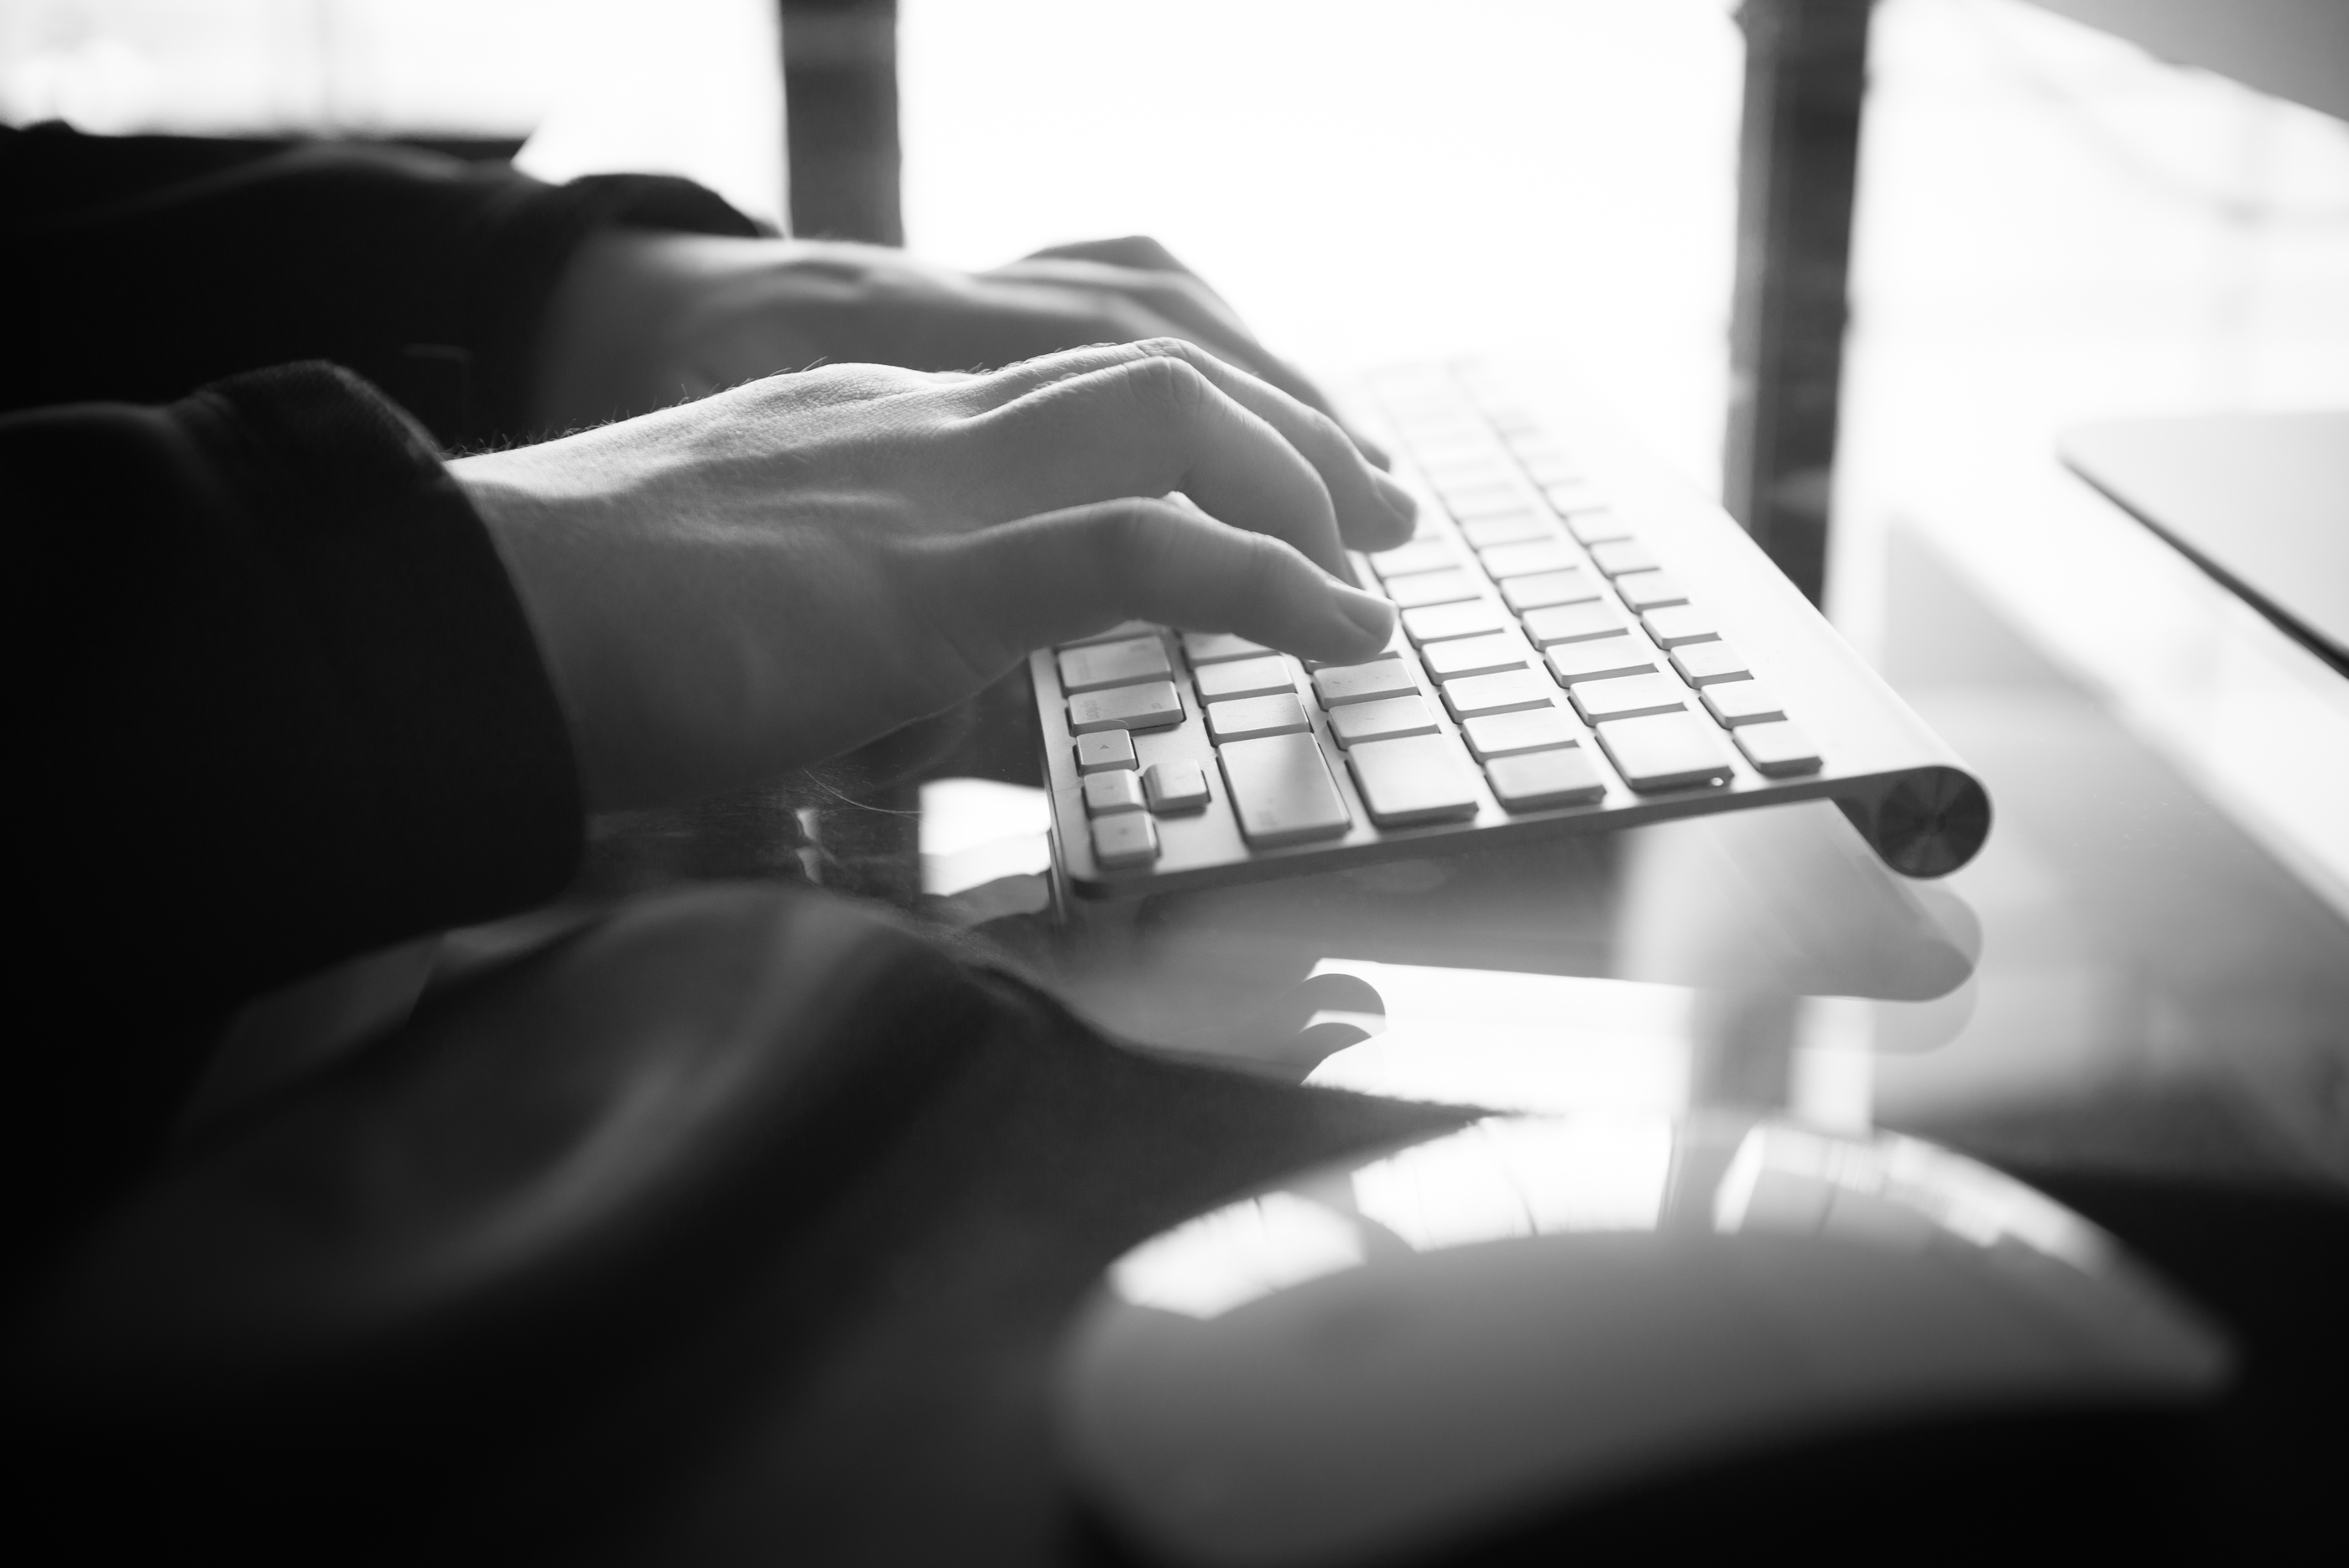 photos of hands typing at a keyboard on a desk